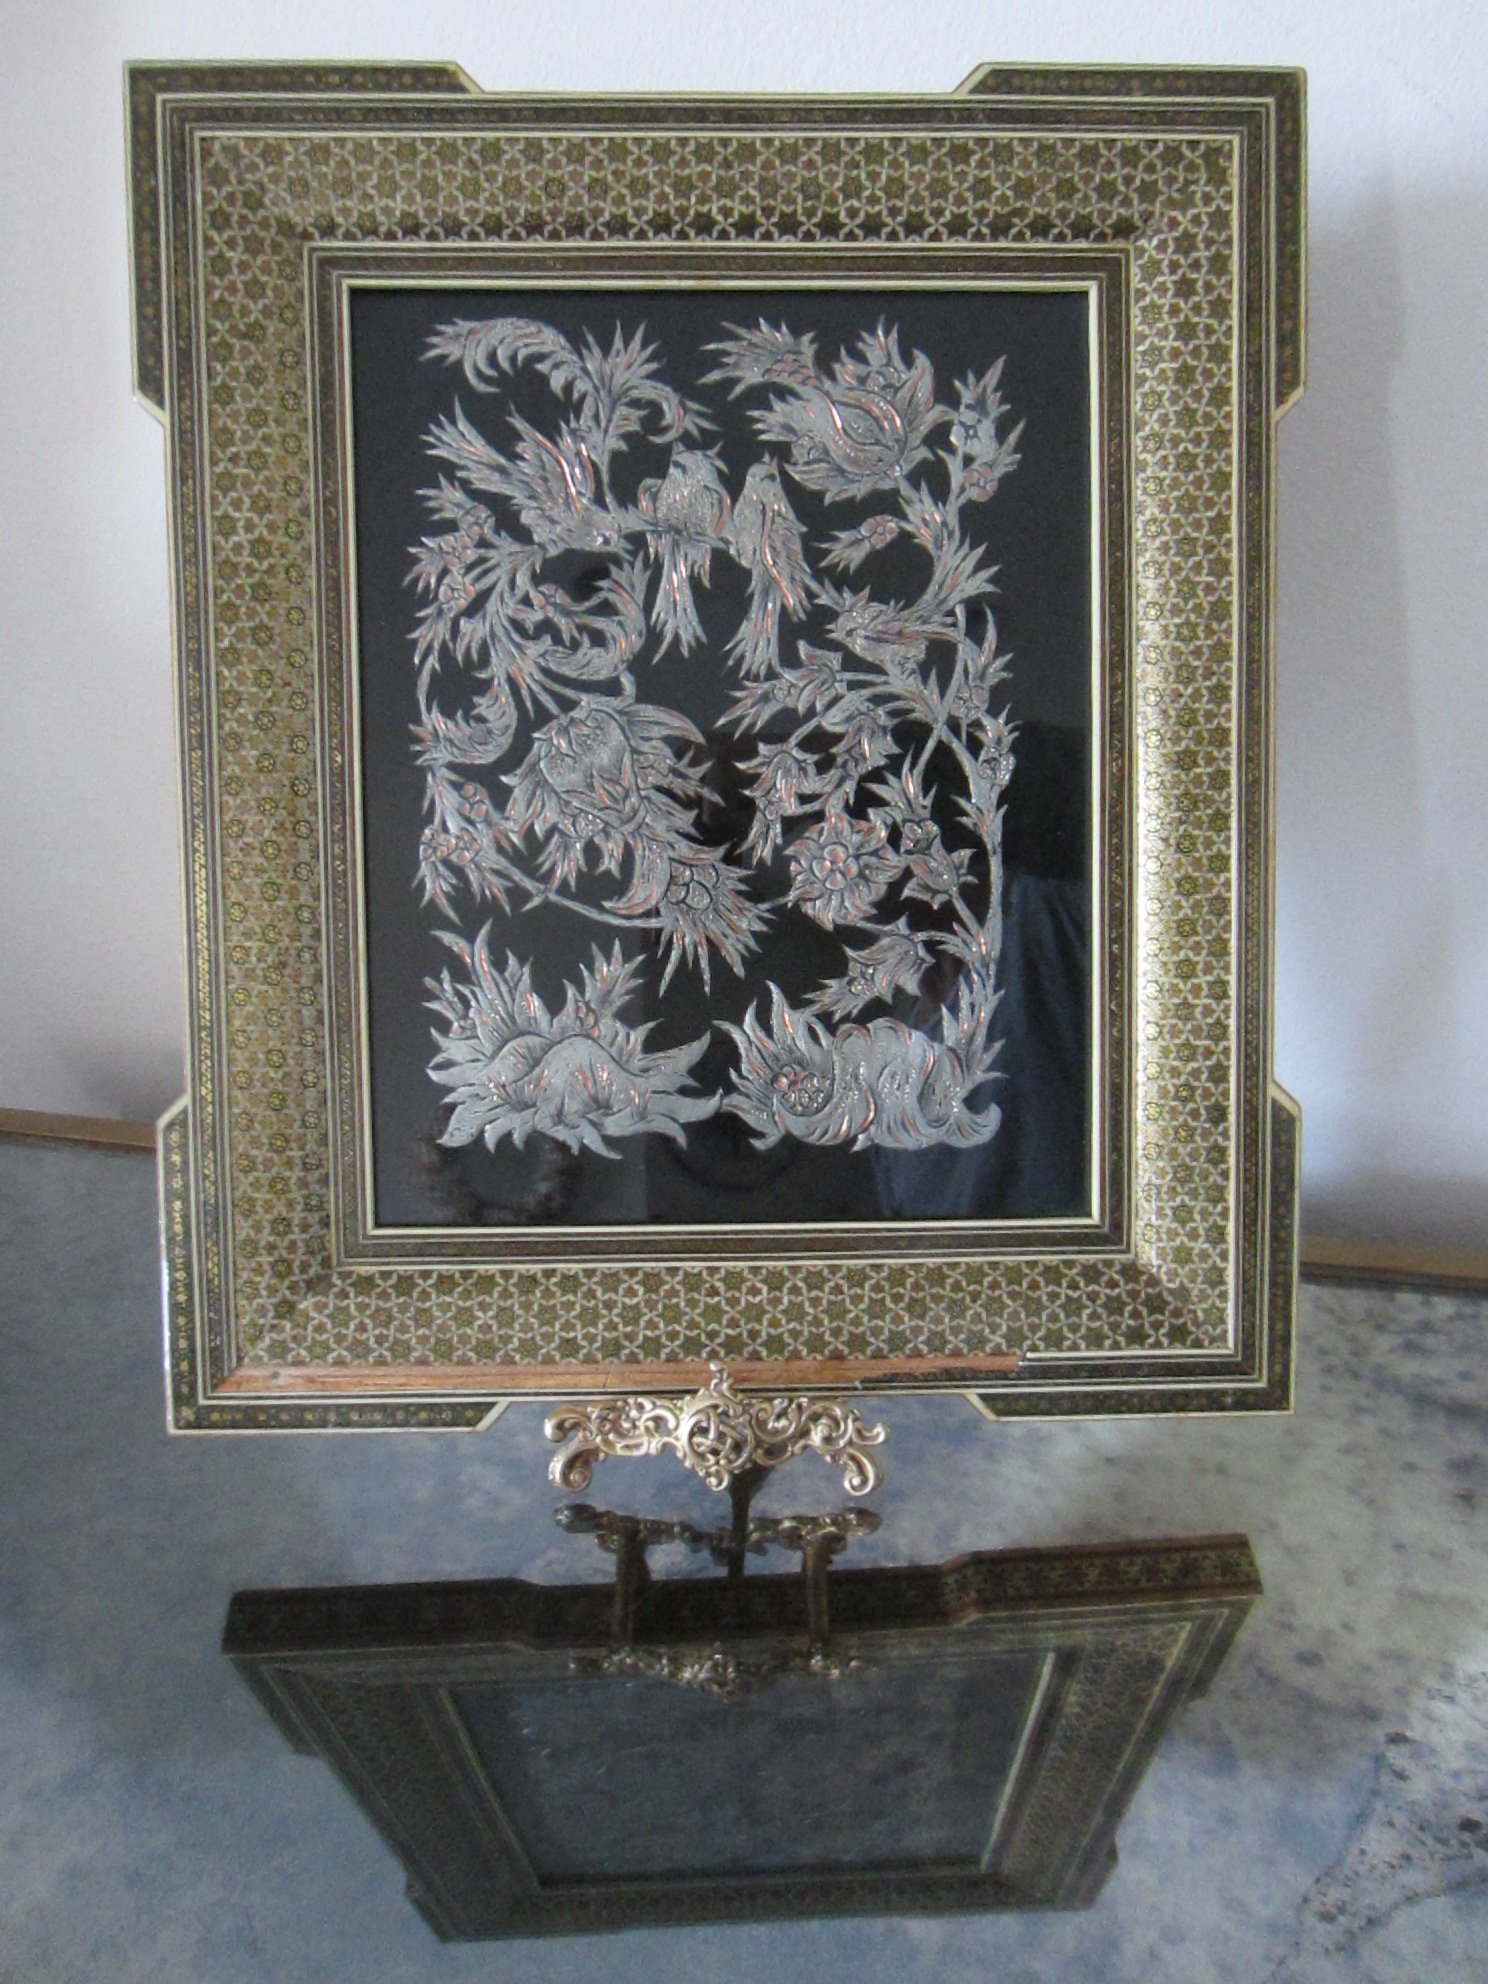 etched metal persian copper art inlaid khatam frame for sale classifieds. Black Bedroom Furniture Sets. Home Design Ideas